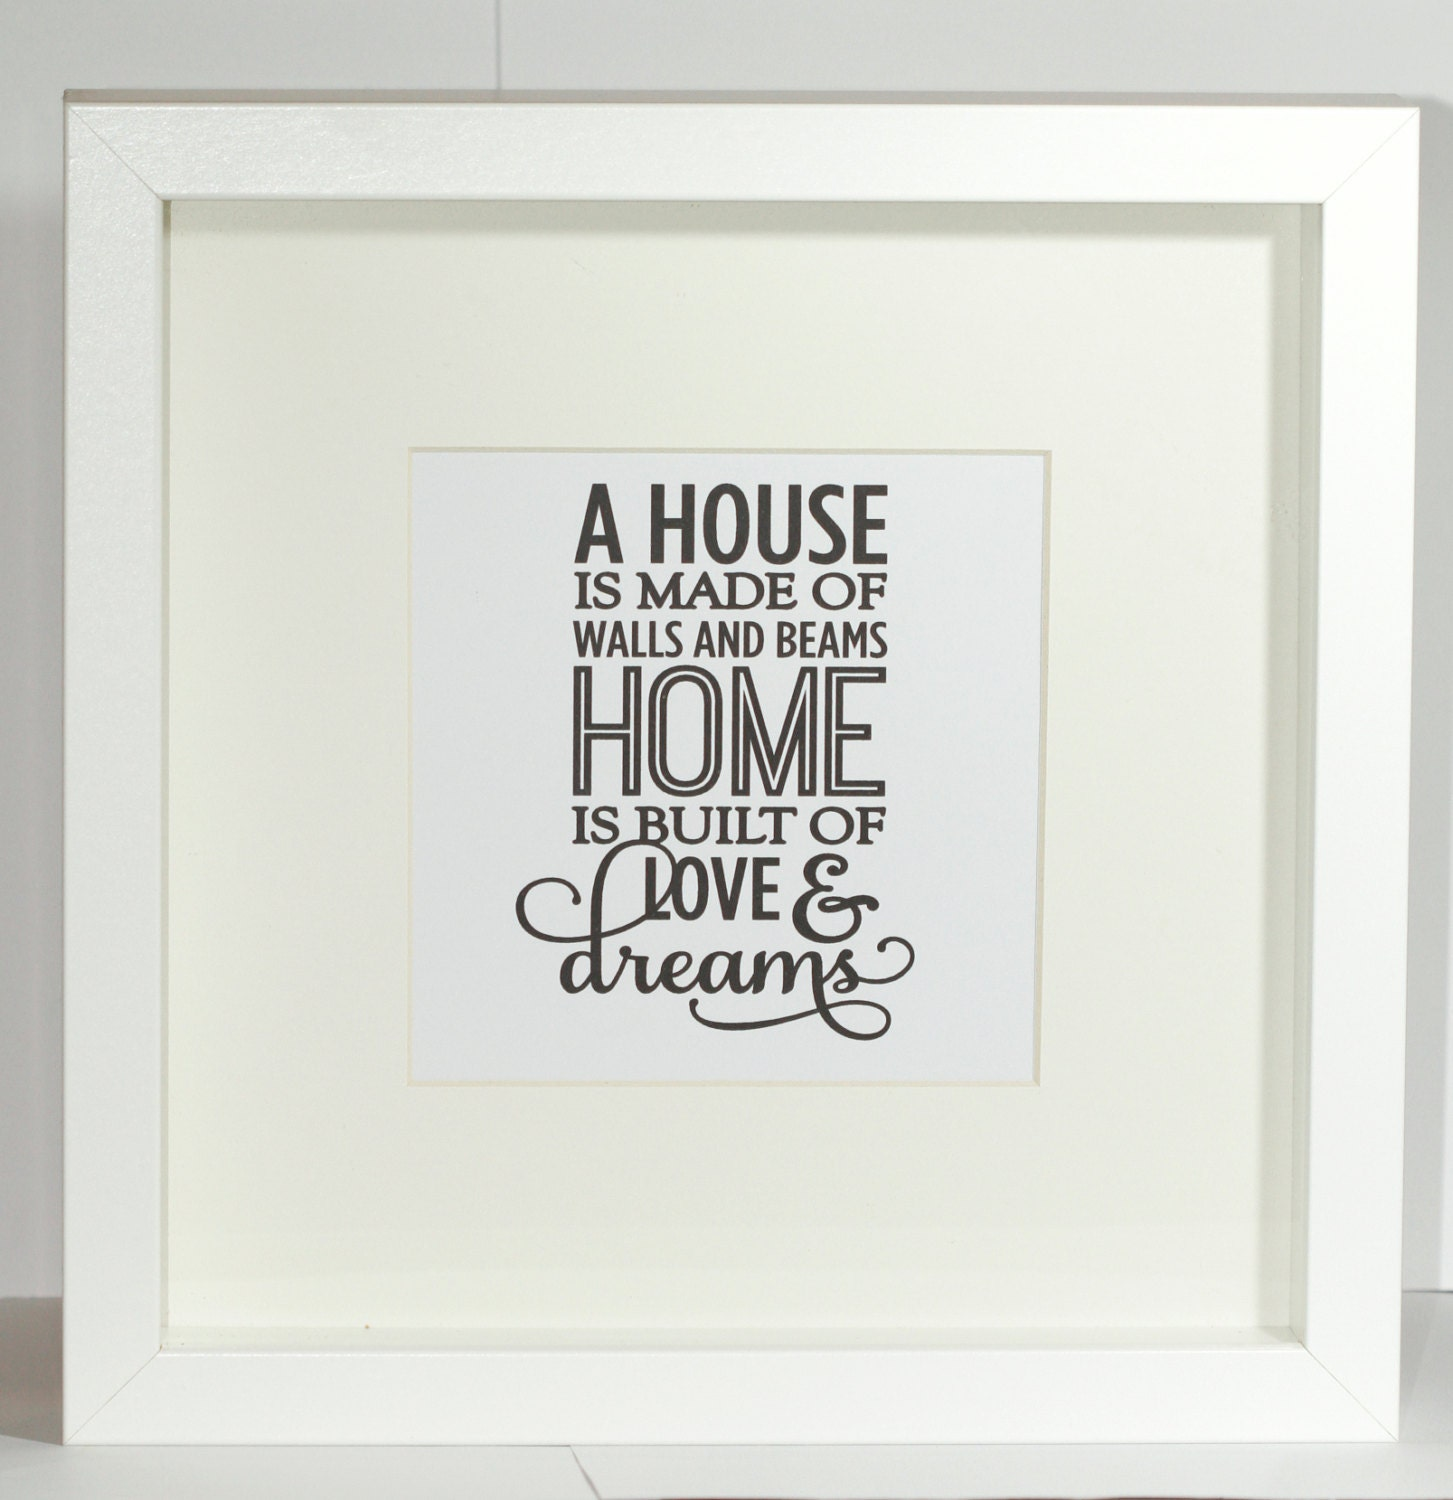 Quotes New Home Framed Quote Printnew Home Gift Framemoving Gifthouse